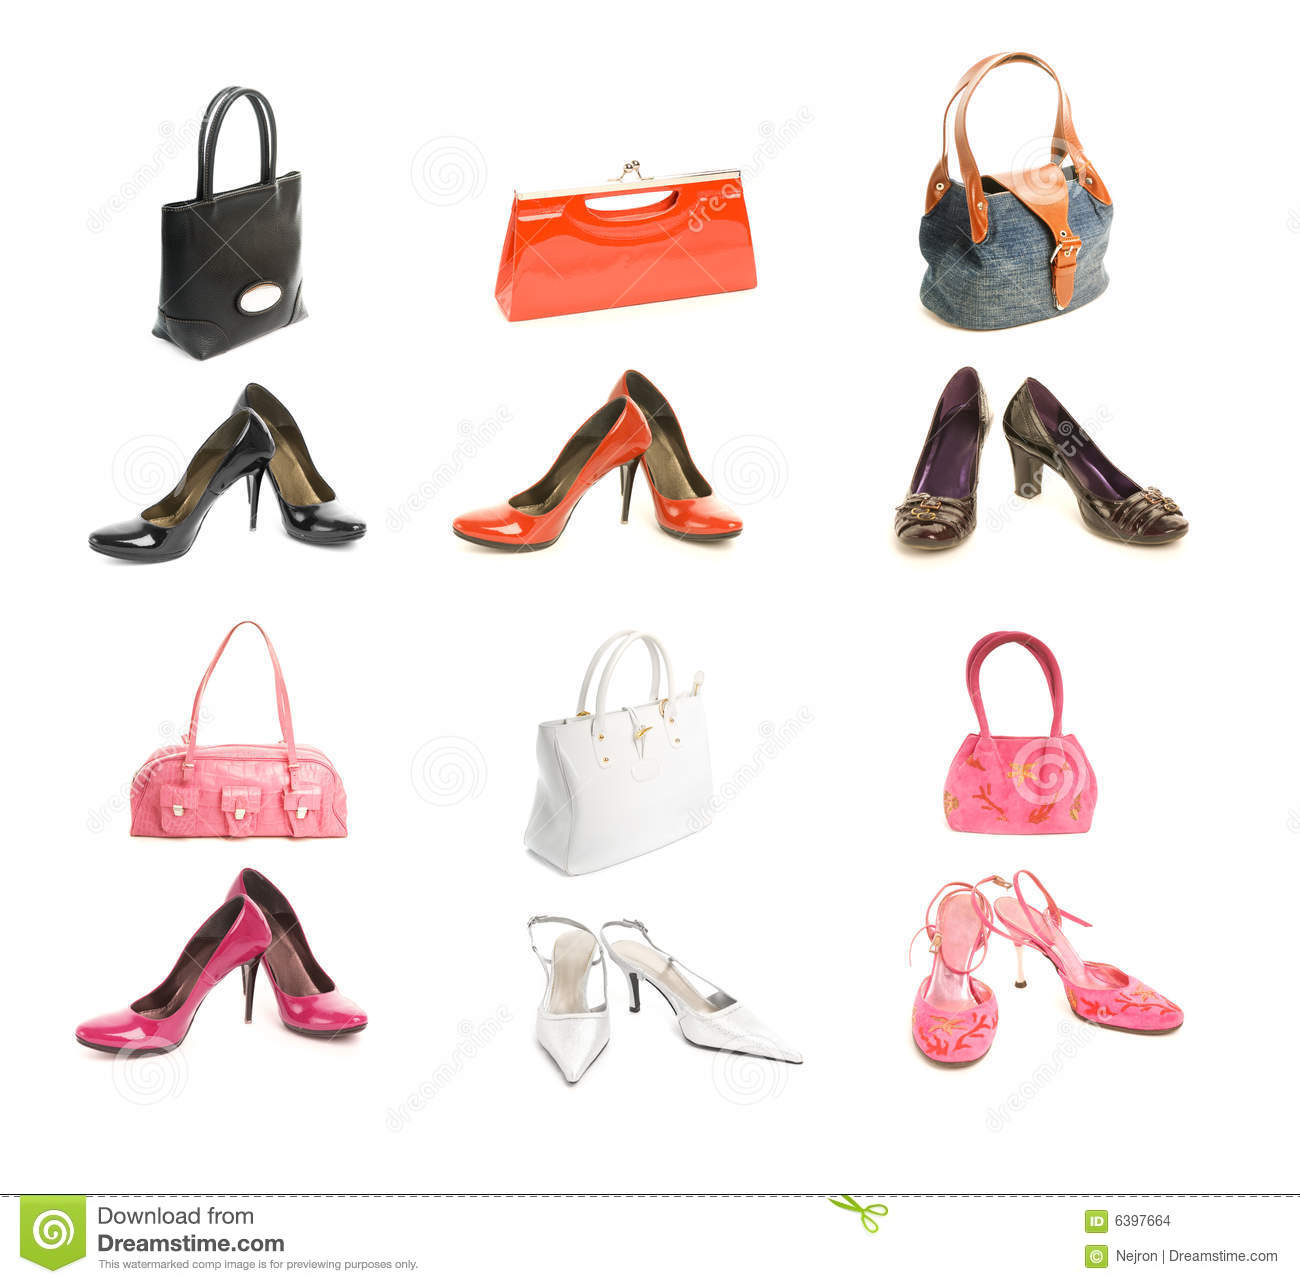 Different Types of Womens Shoes Online | robertpricewin